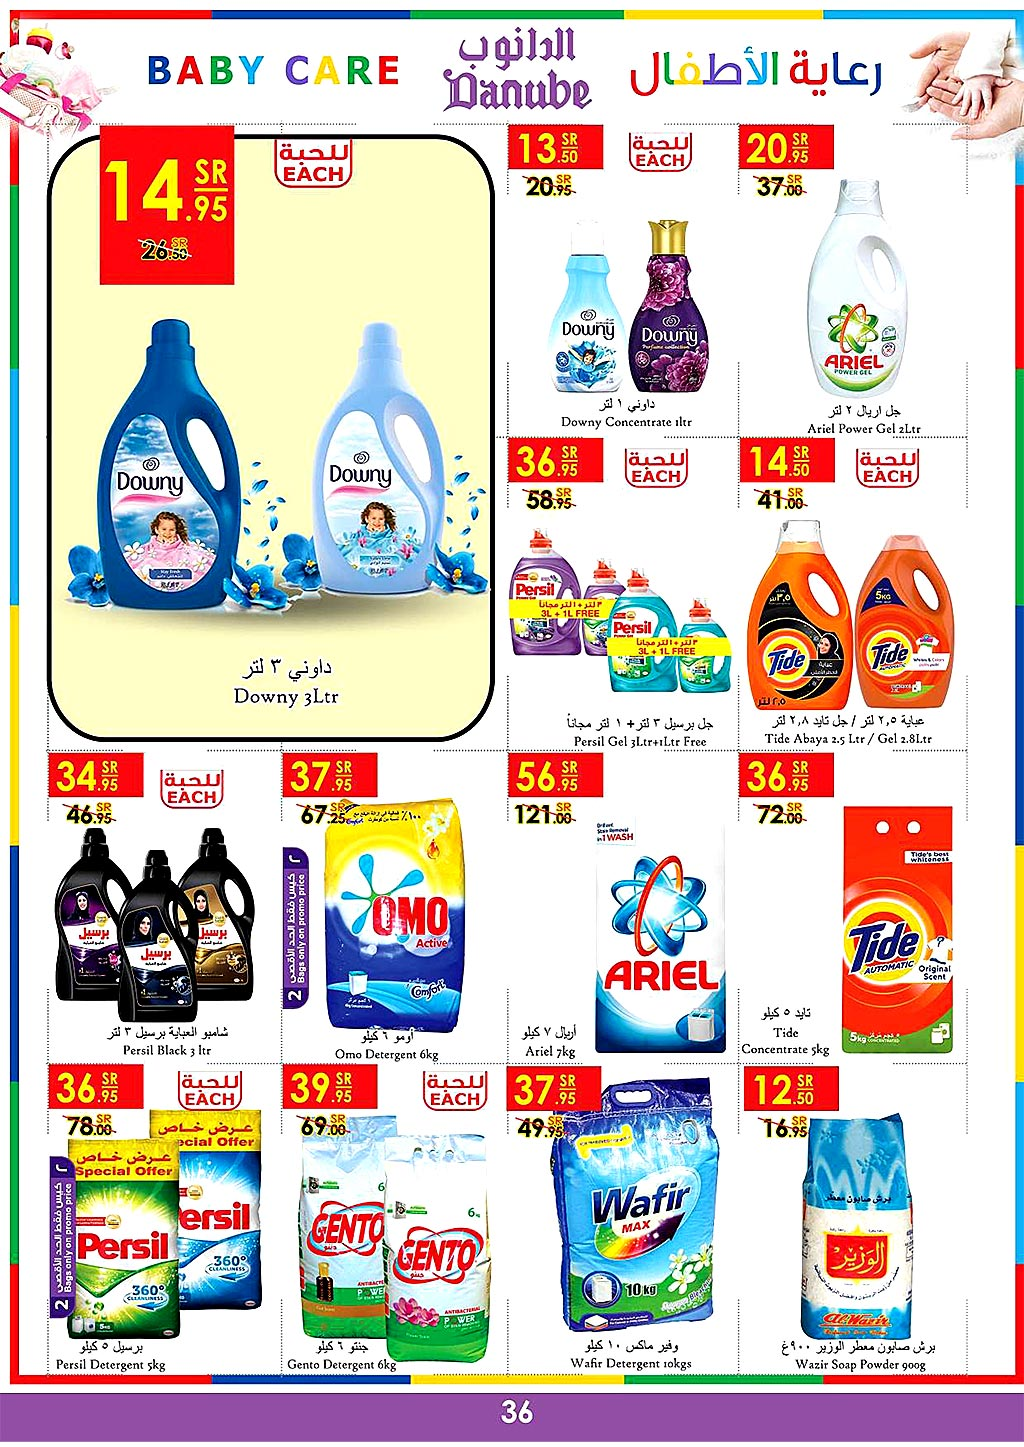 danube offers from 24july to 31july 2019 page number 35 عروض الدانوب من 24 يوليو حتى 31 يوليو 2019 صفحة رقم 35